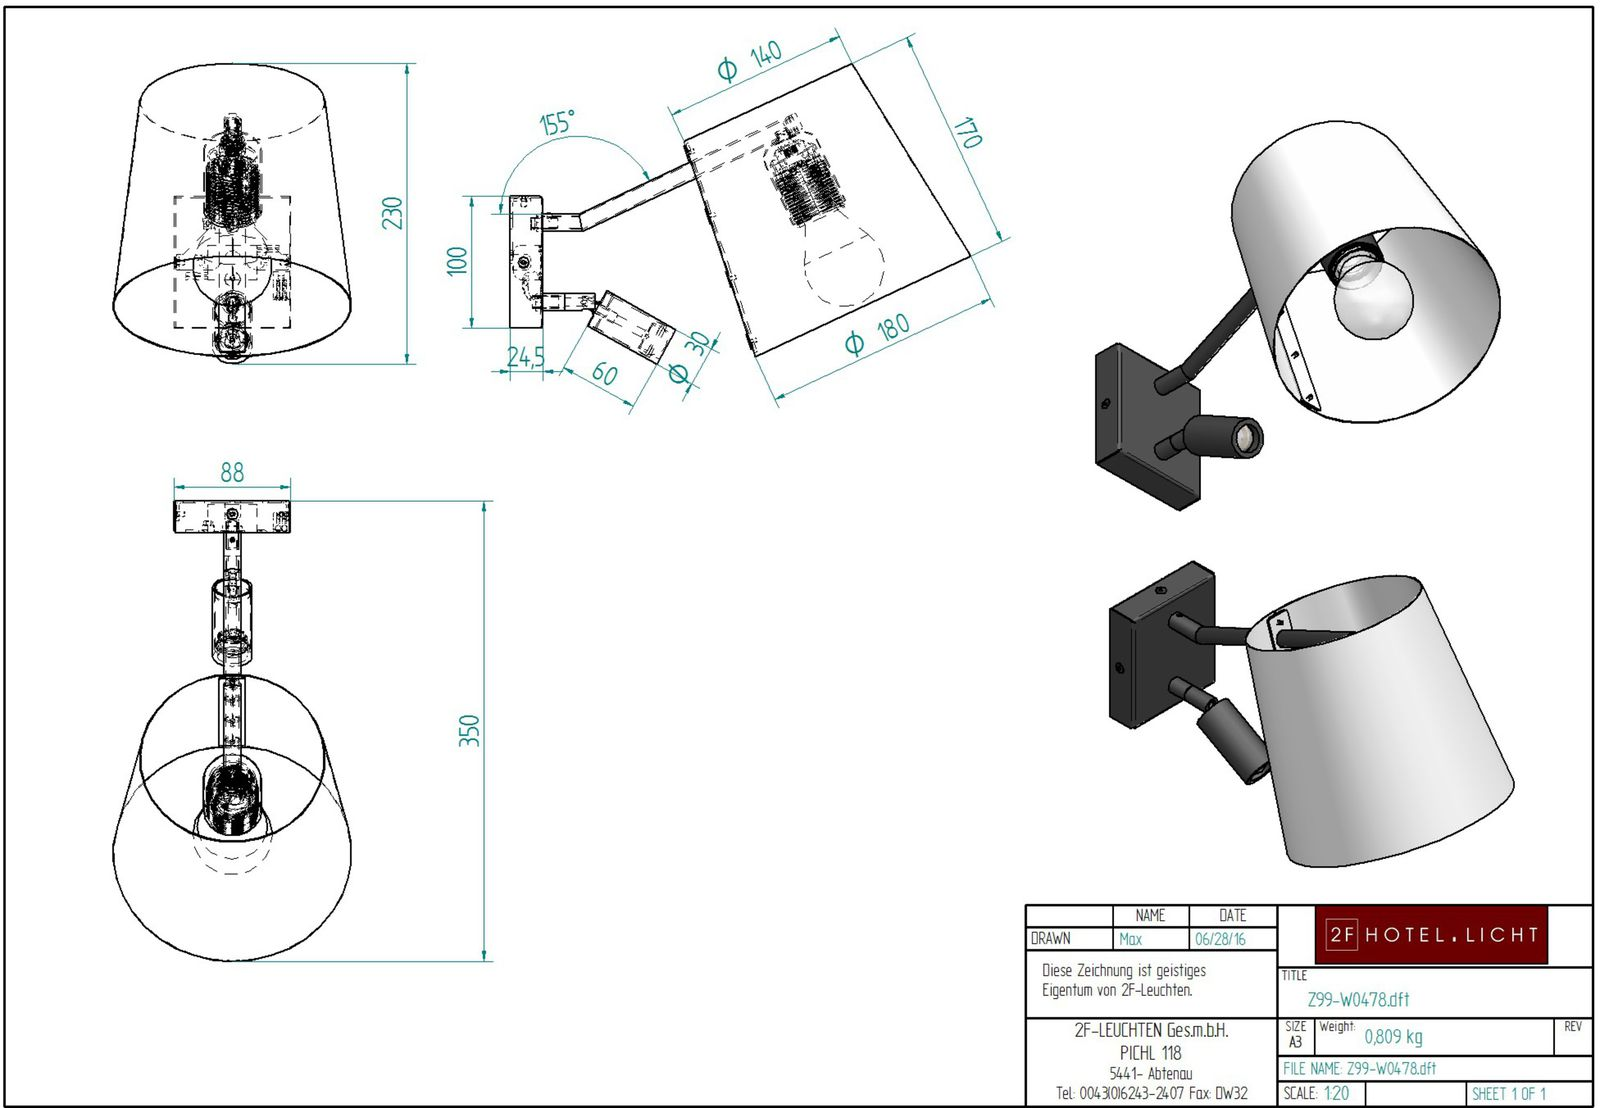 Wall lamp, L=336mm, H=180mm, surface: metal, SWF black, techn. Data: 1xE27, 42W A60